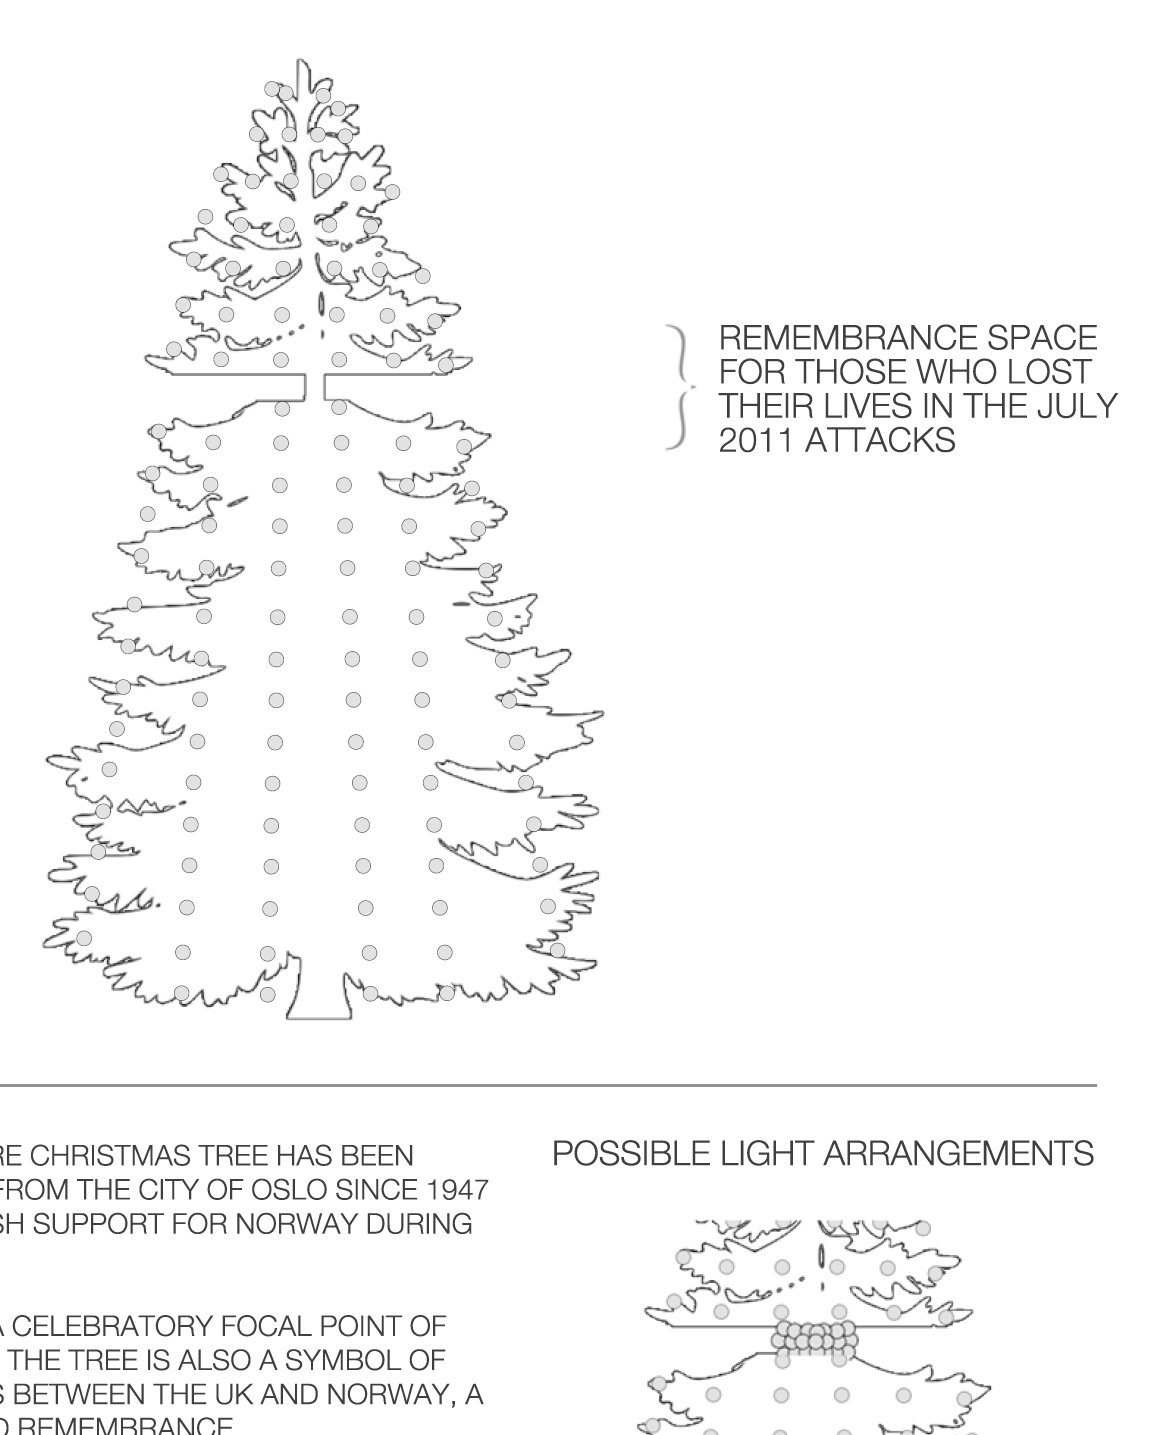 Creative spec for YESMUTHA's proposed arrangements for the 2011 Christmas Tree lights in Trafalgar Square.